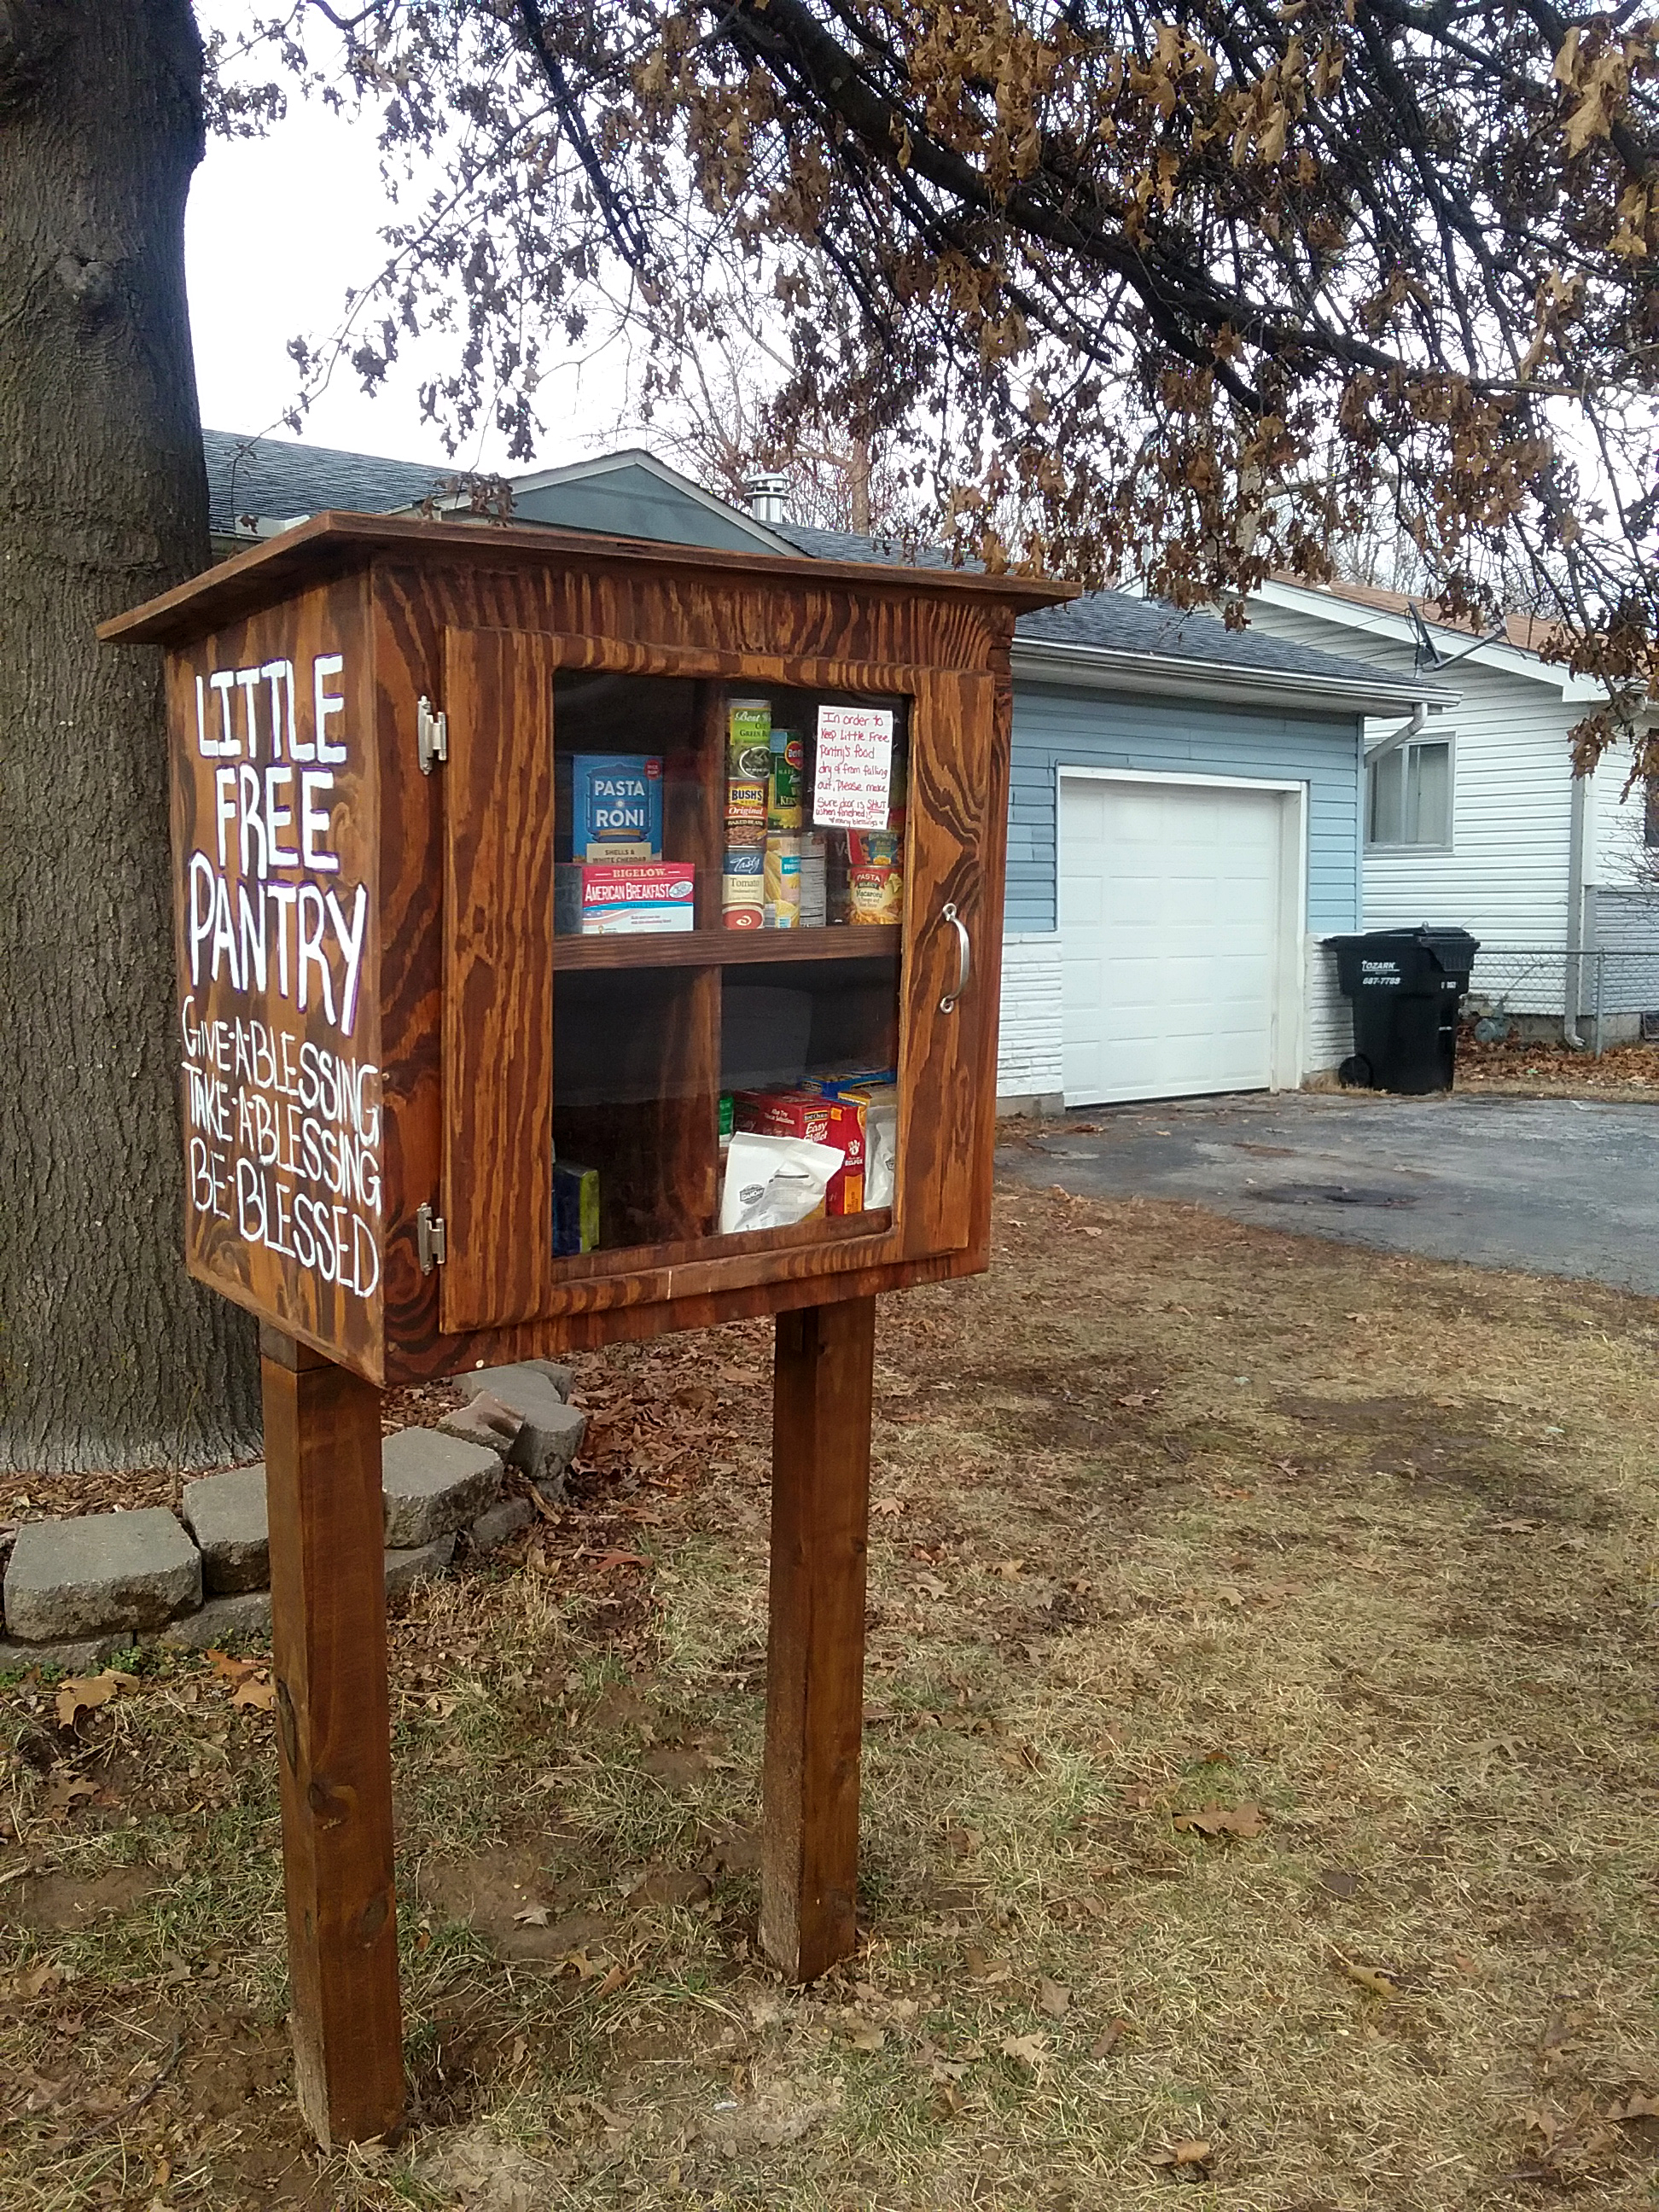 Little Free Libraries, pantry spread literacy, hope and goodwill